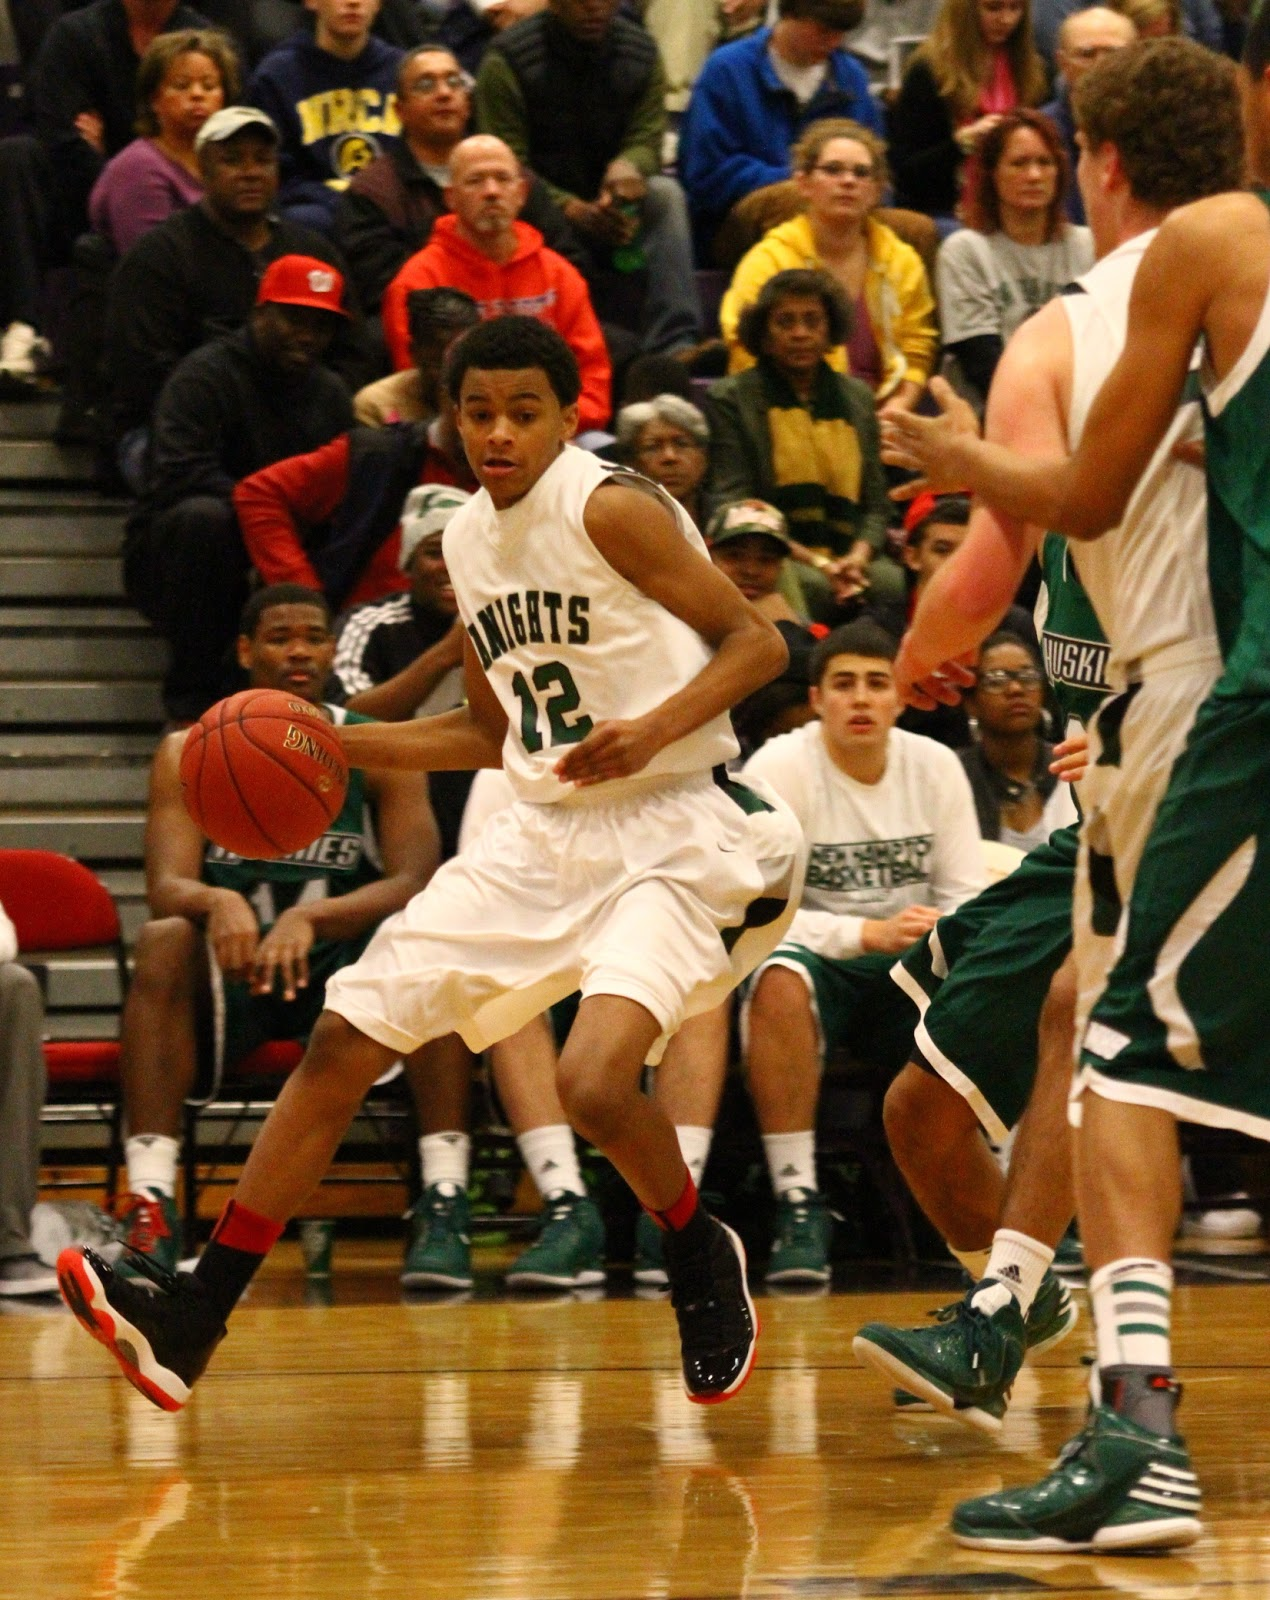 2016 Basketball Prospect: PG Jalen Harris | A Sea of Red